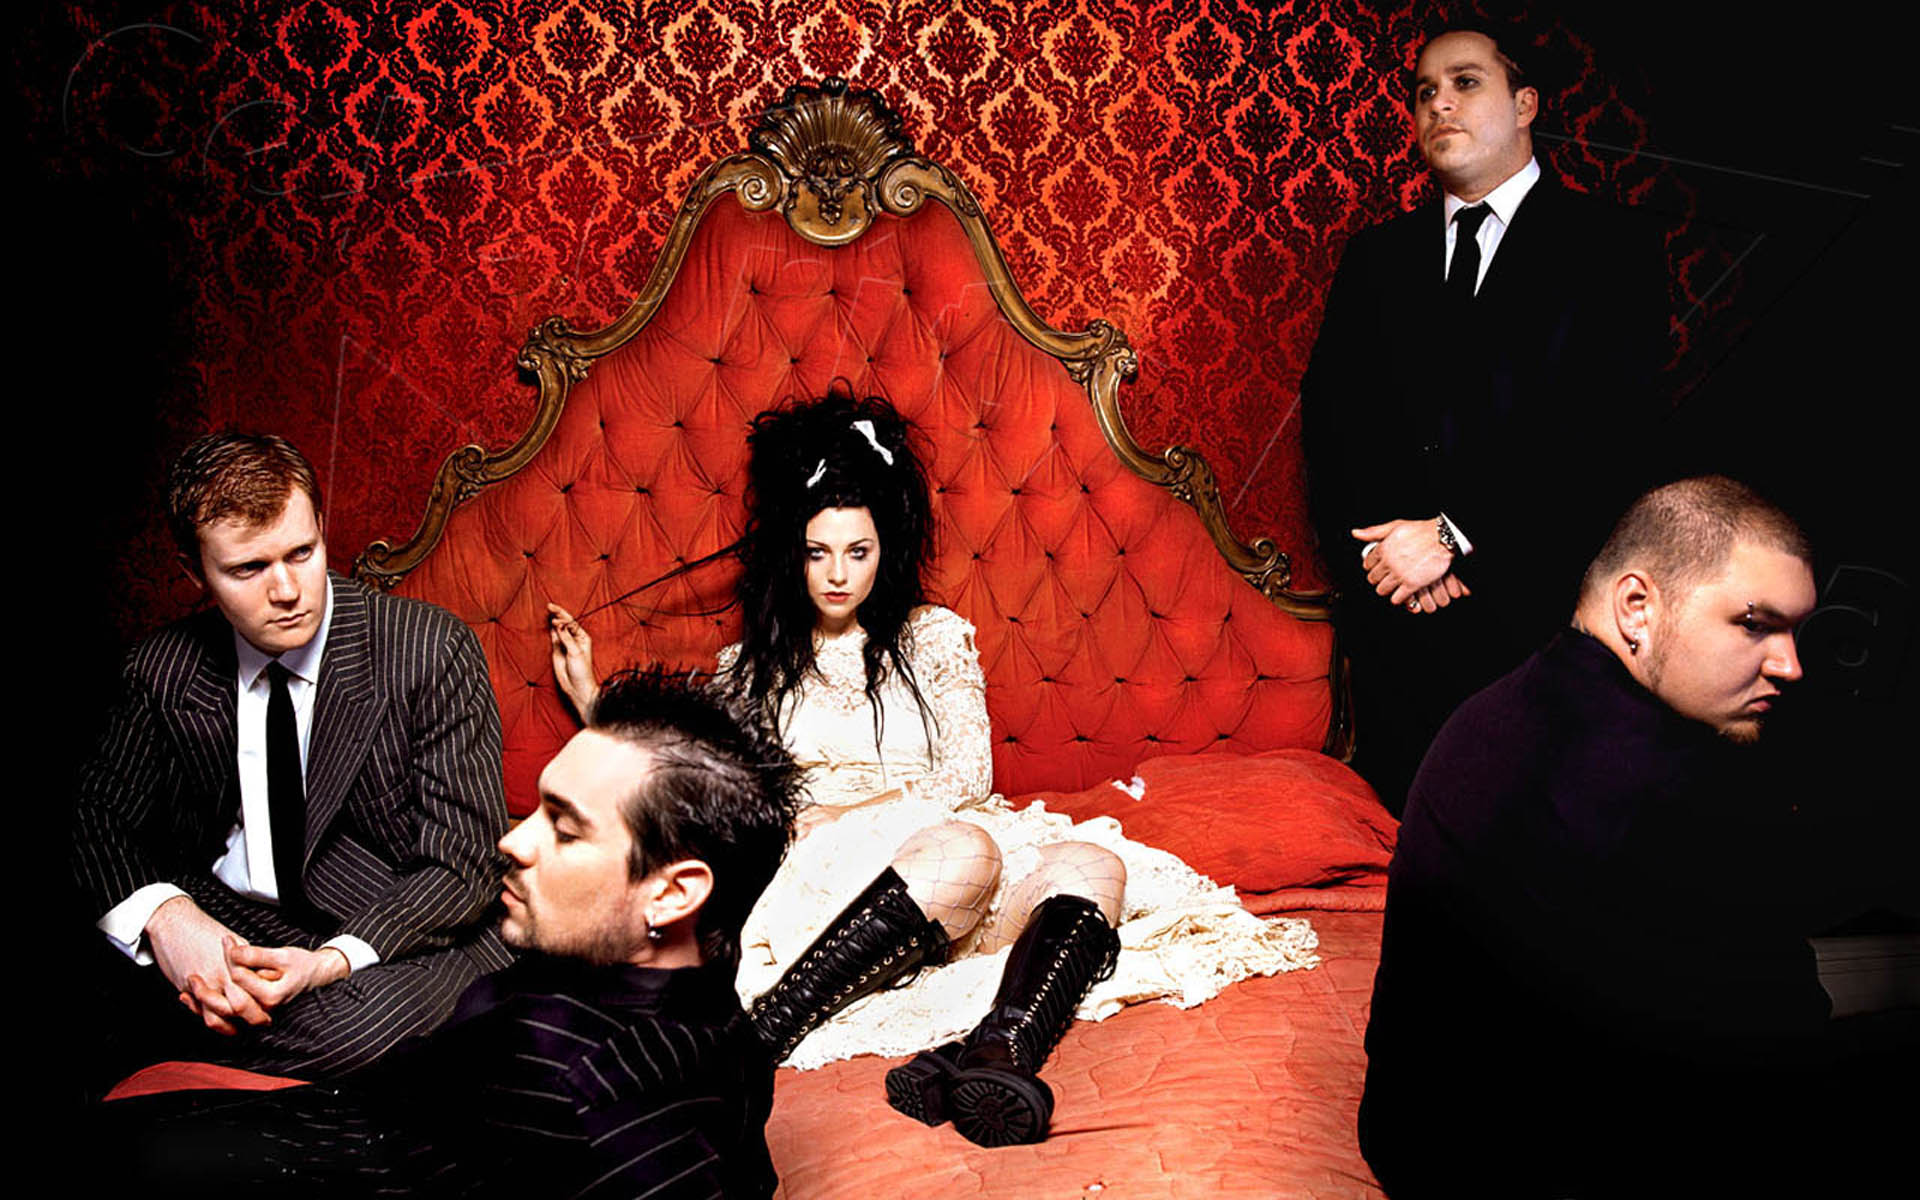 Evanescence Evanescence 1920x1200 Wallpapers 1920x1200 Wallpapers 1920x1200